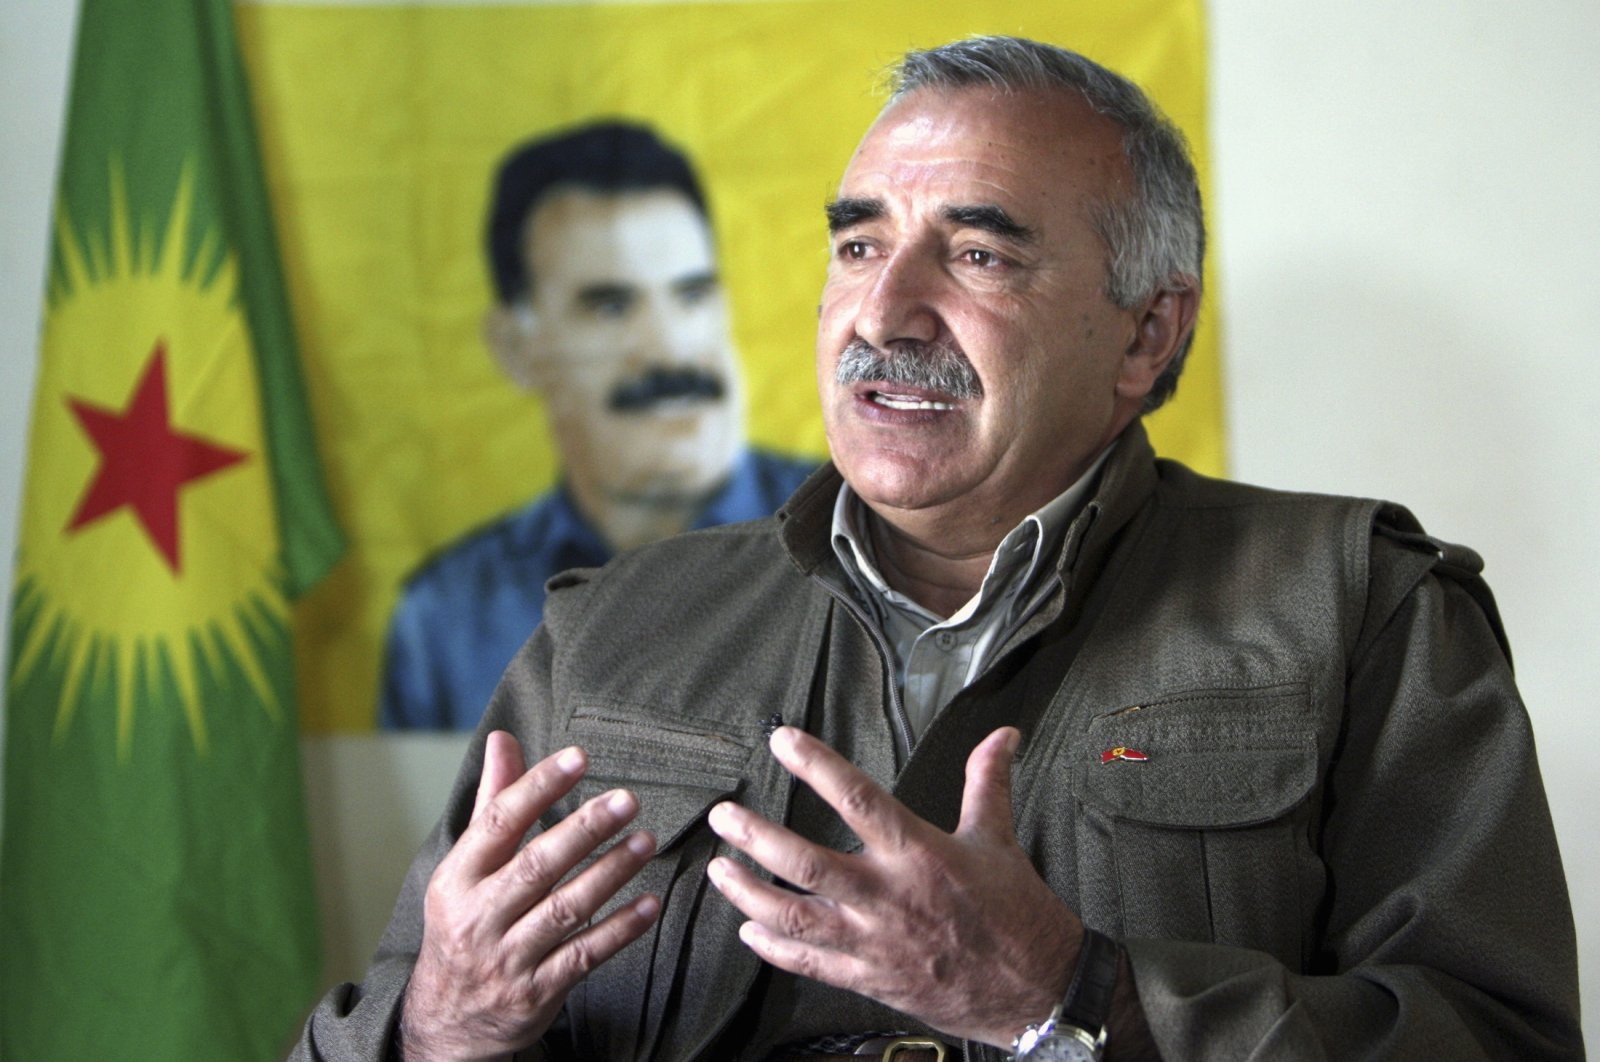 PKK terrorist group's acting leader Murat Karayılan speaks during an interview with Reuters in the Qandil Mountains near the Iraqi-Turkish border in Sulaymaniyah, 330 kilometers (205 miles) northeast of Baghdad, Iraq, March 24, 2013. (Reuters Photo)